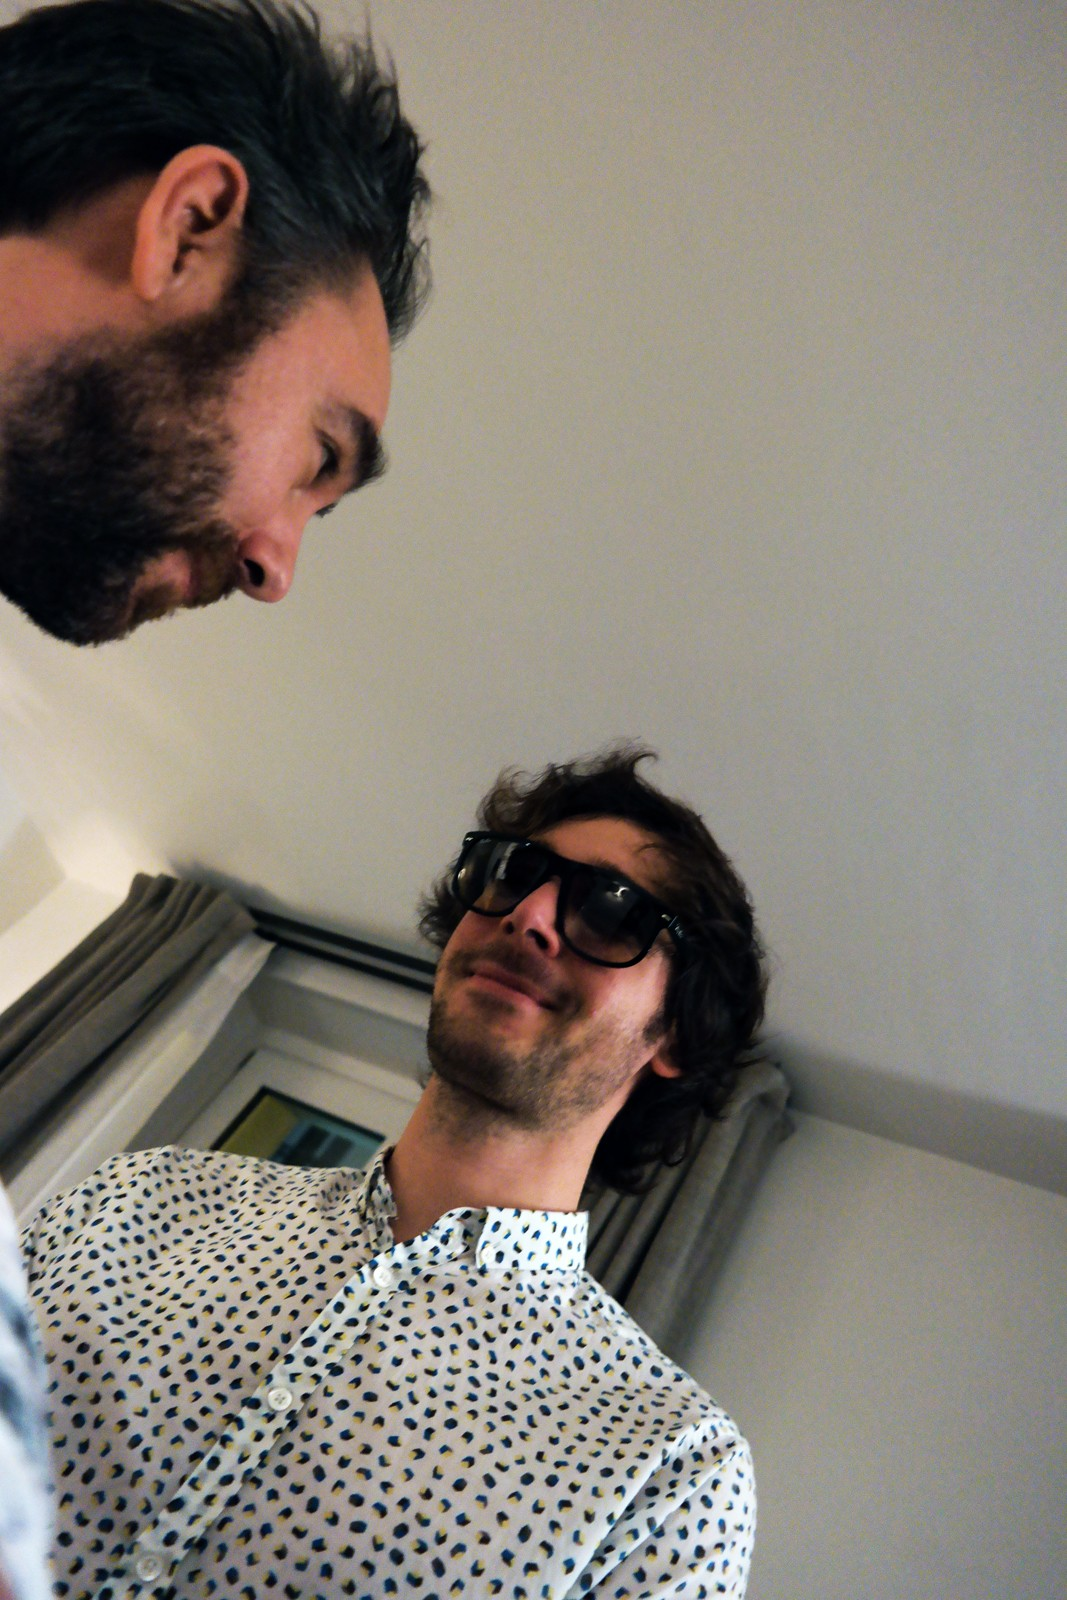 Pony Pony Run Run Amaël et Gaëtan selfie original pour UsofParis blog interview album Voyage Voyage Pias France Le Label